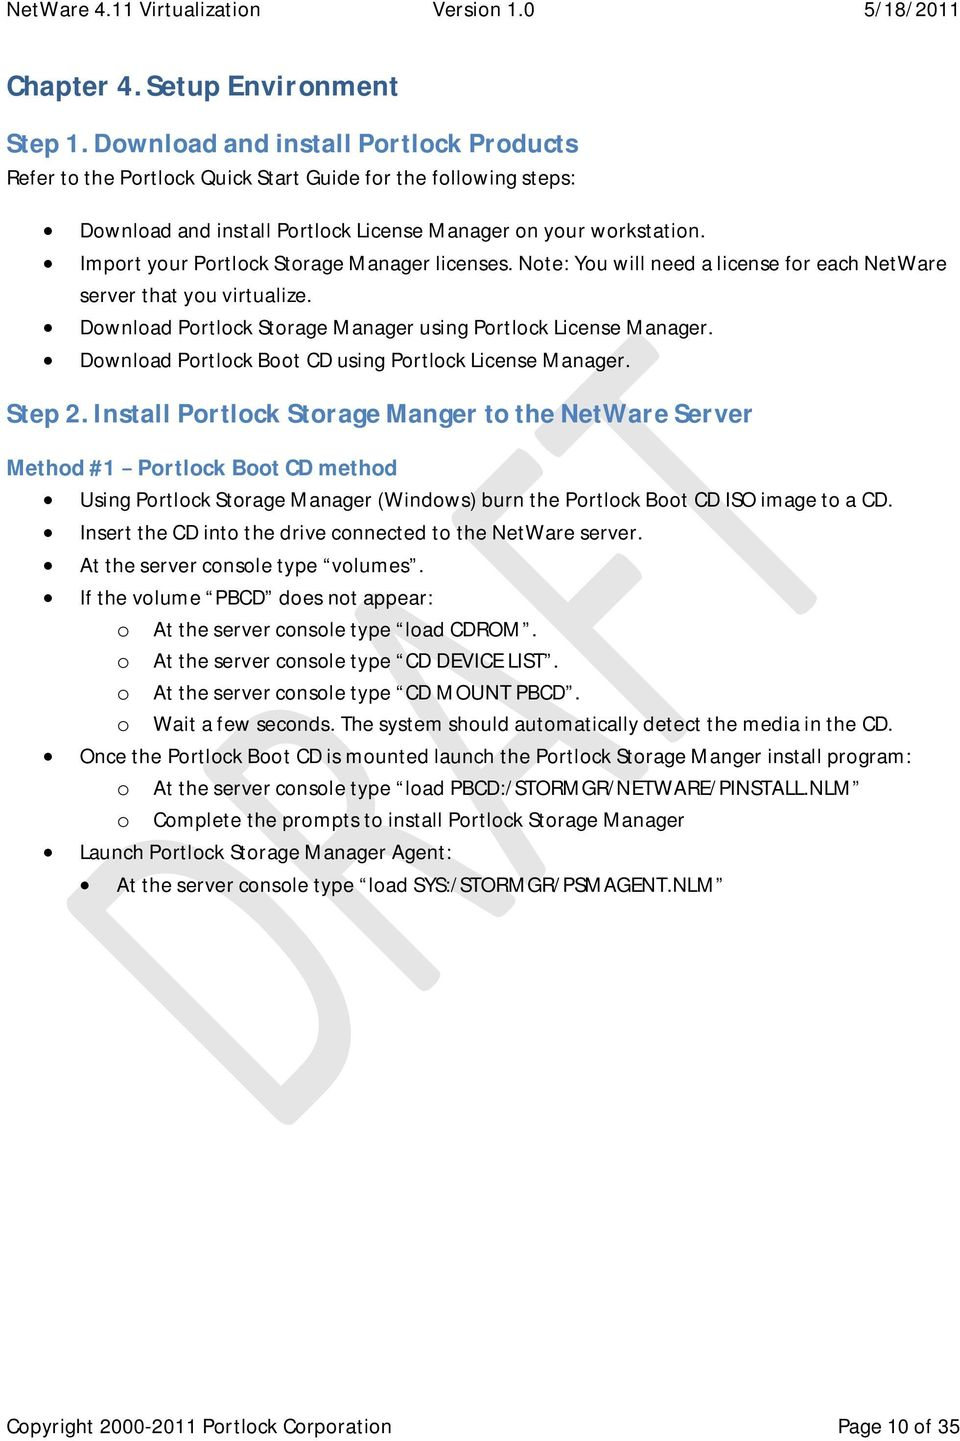 Download Portlock Boot CD using Portlock License Manager. Step2.